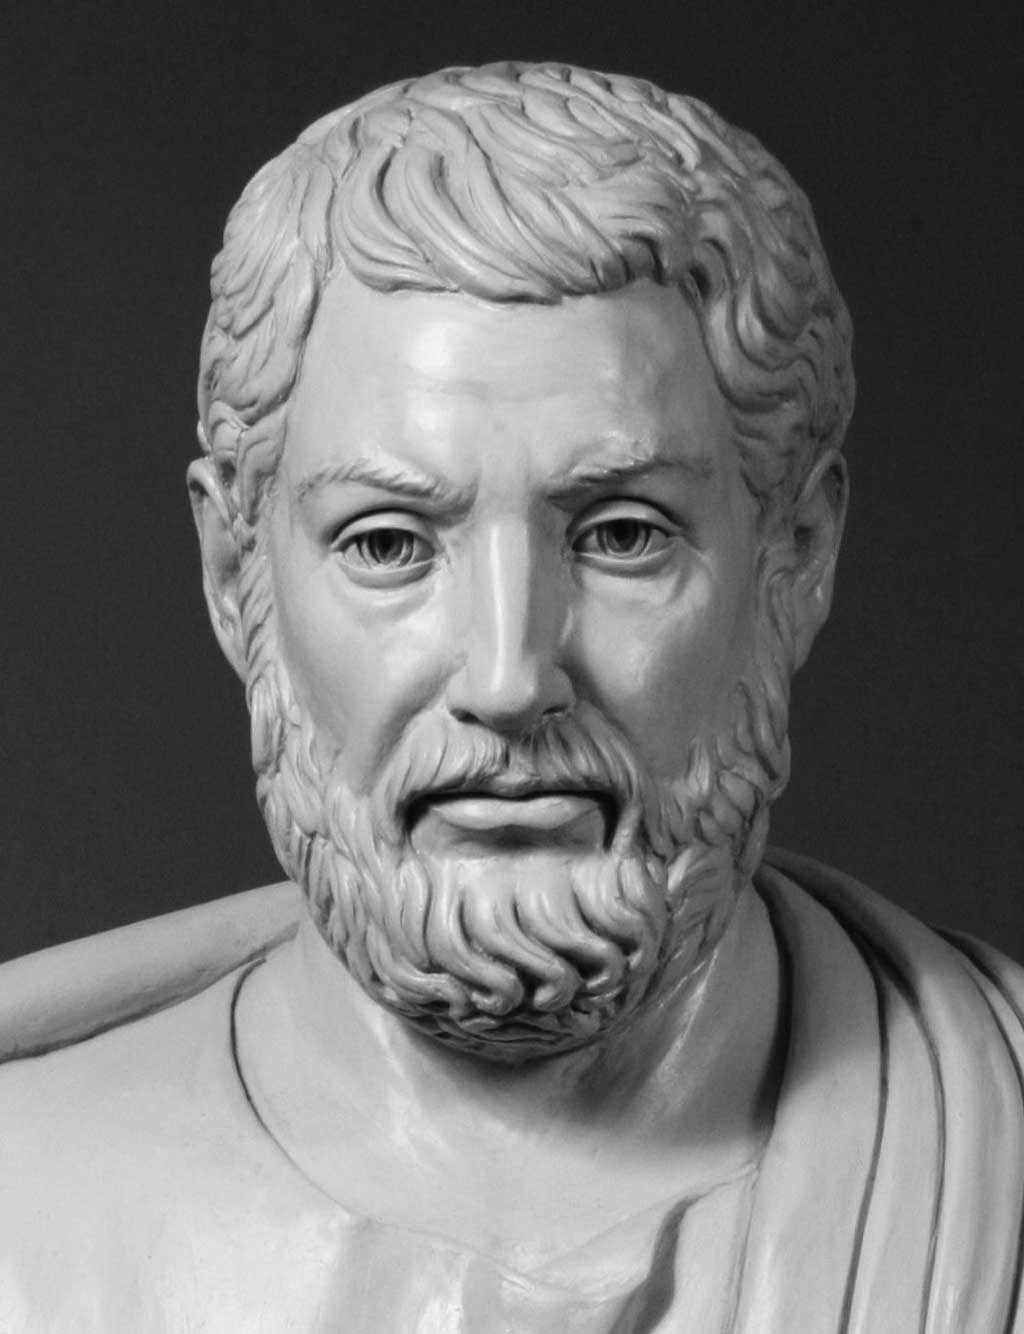 Modern bust of Cleisthenes, known as 'the father of Athenian democracy,' on view at the Ohio Statehouse, Columbus, Ohio. Cleisthenes, the father of Greek democracy, reformed traditional Athenian government controlled by ruling tribes into the first government 'of the people' (a demos, or democracy).